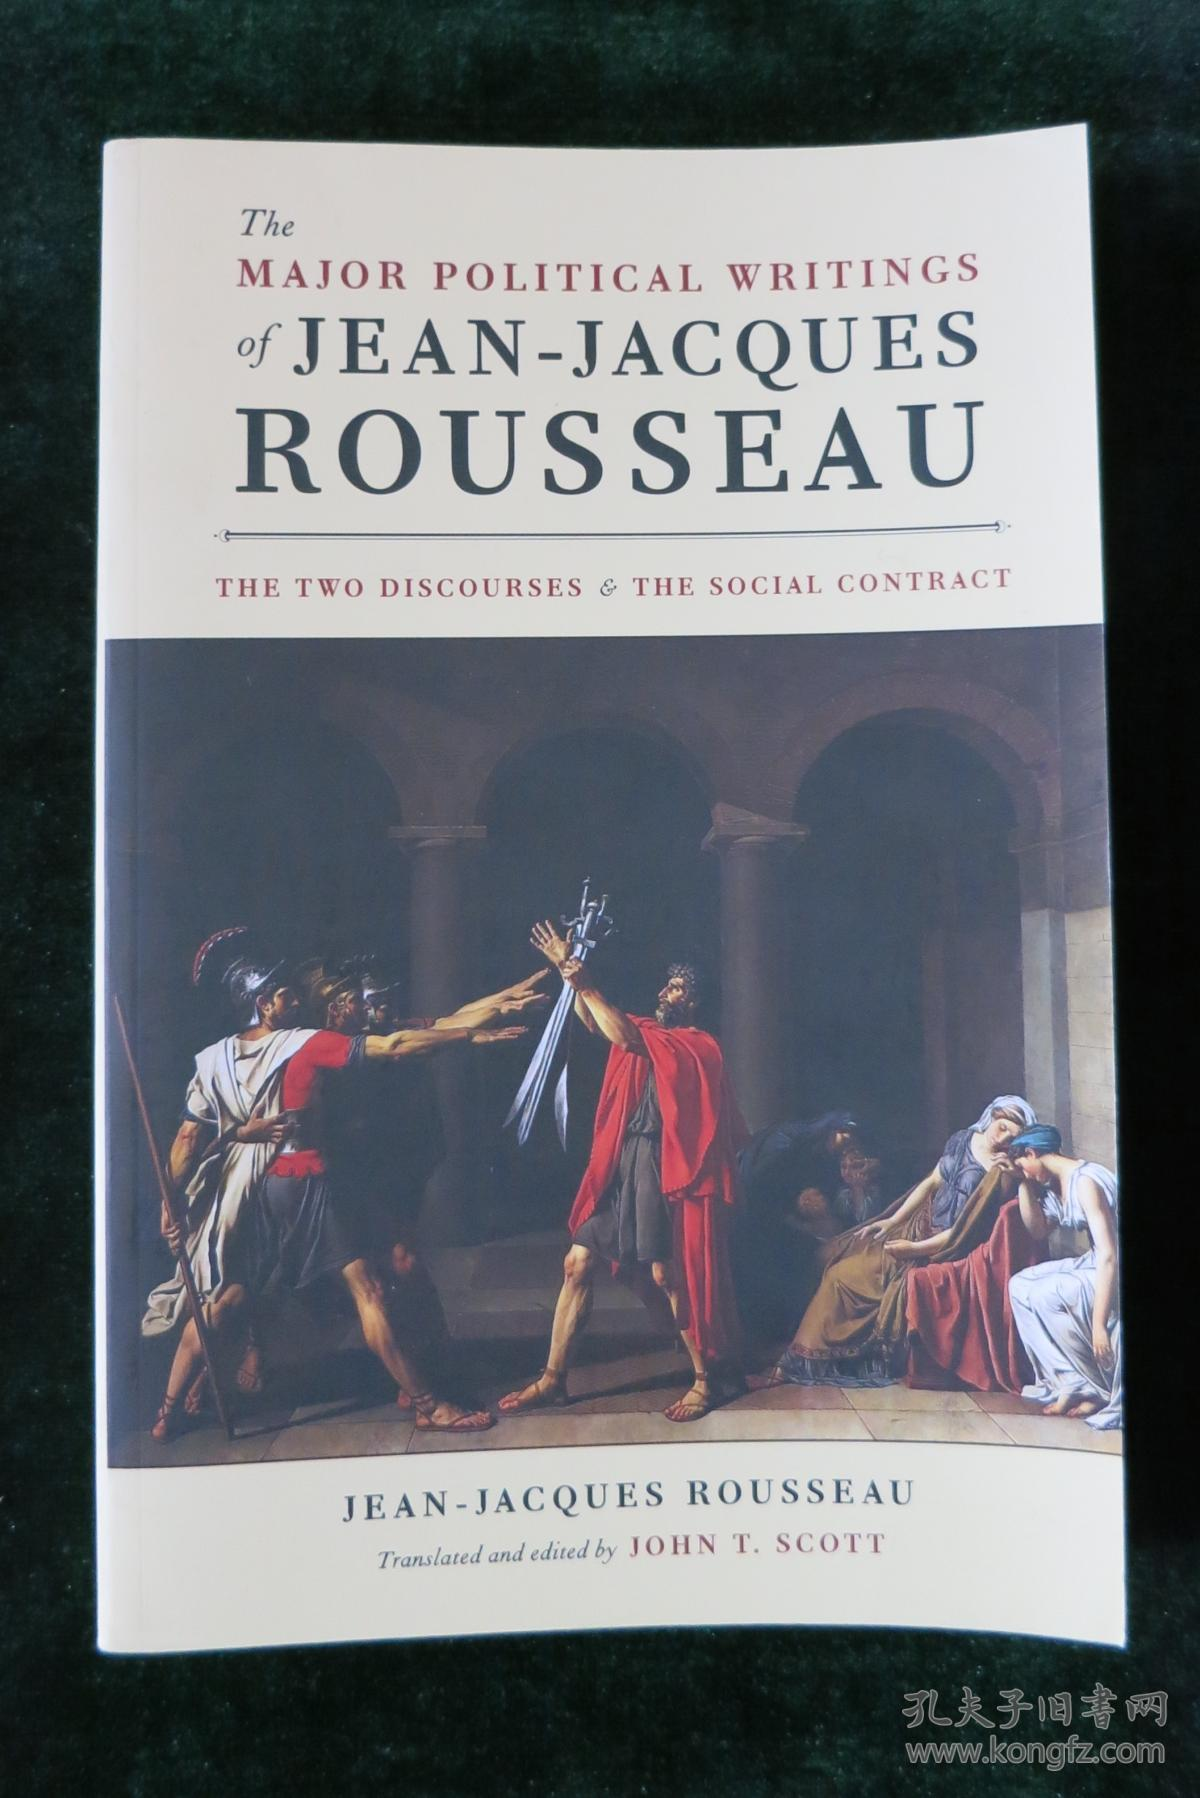 The Major Political Writings of Jean-Jacques Rousseau: The Two Discourses and the Social Contract